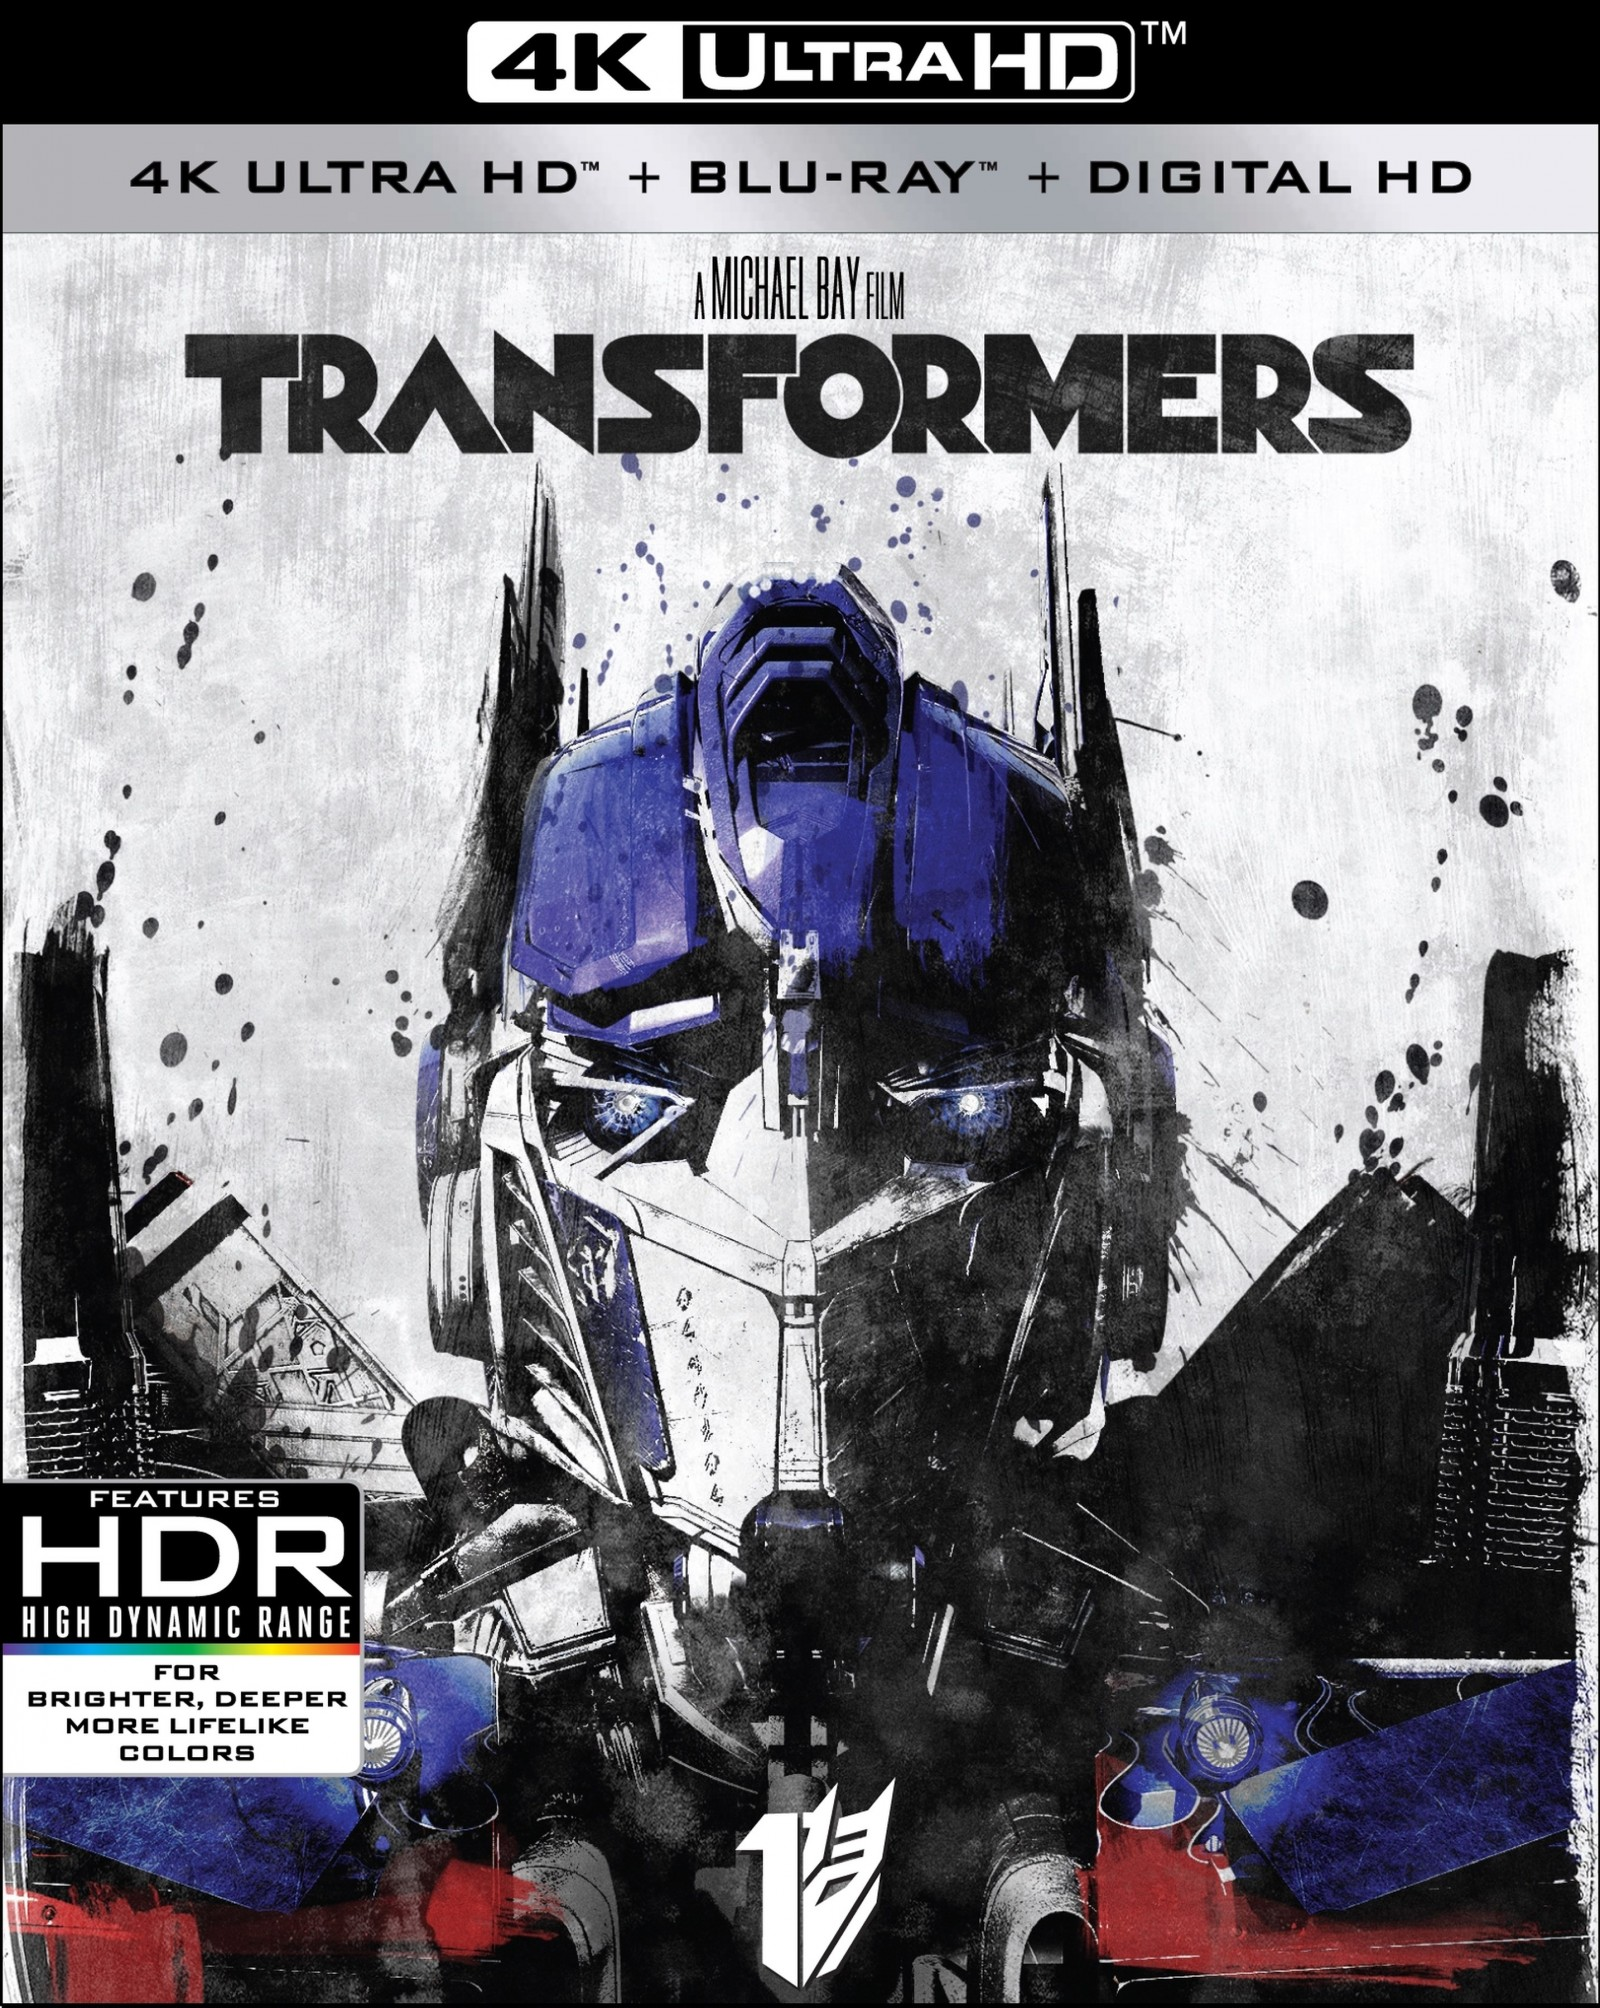 Transformers News: TRANSFORMERS Films to be Released on 4K UHD in December 2017